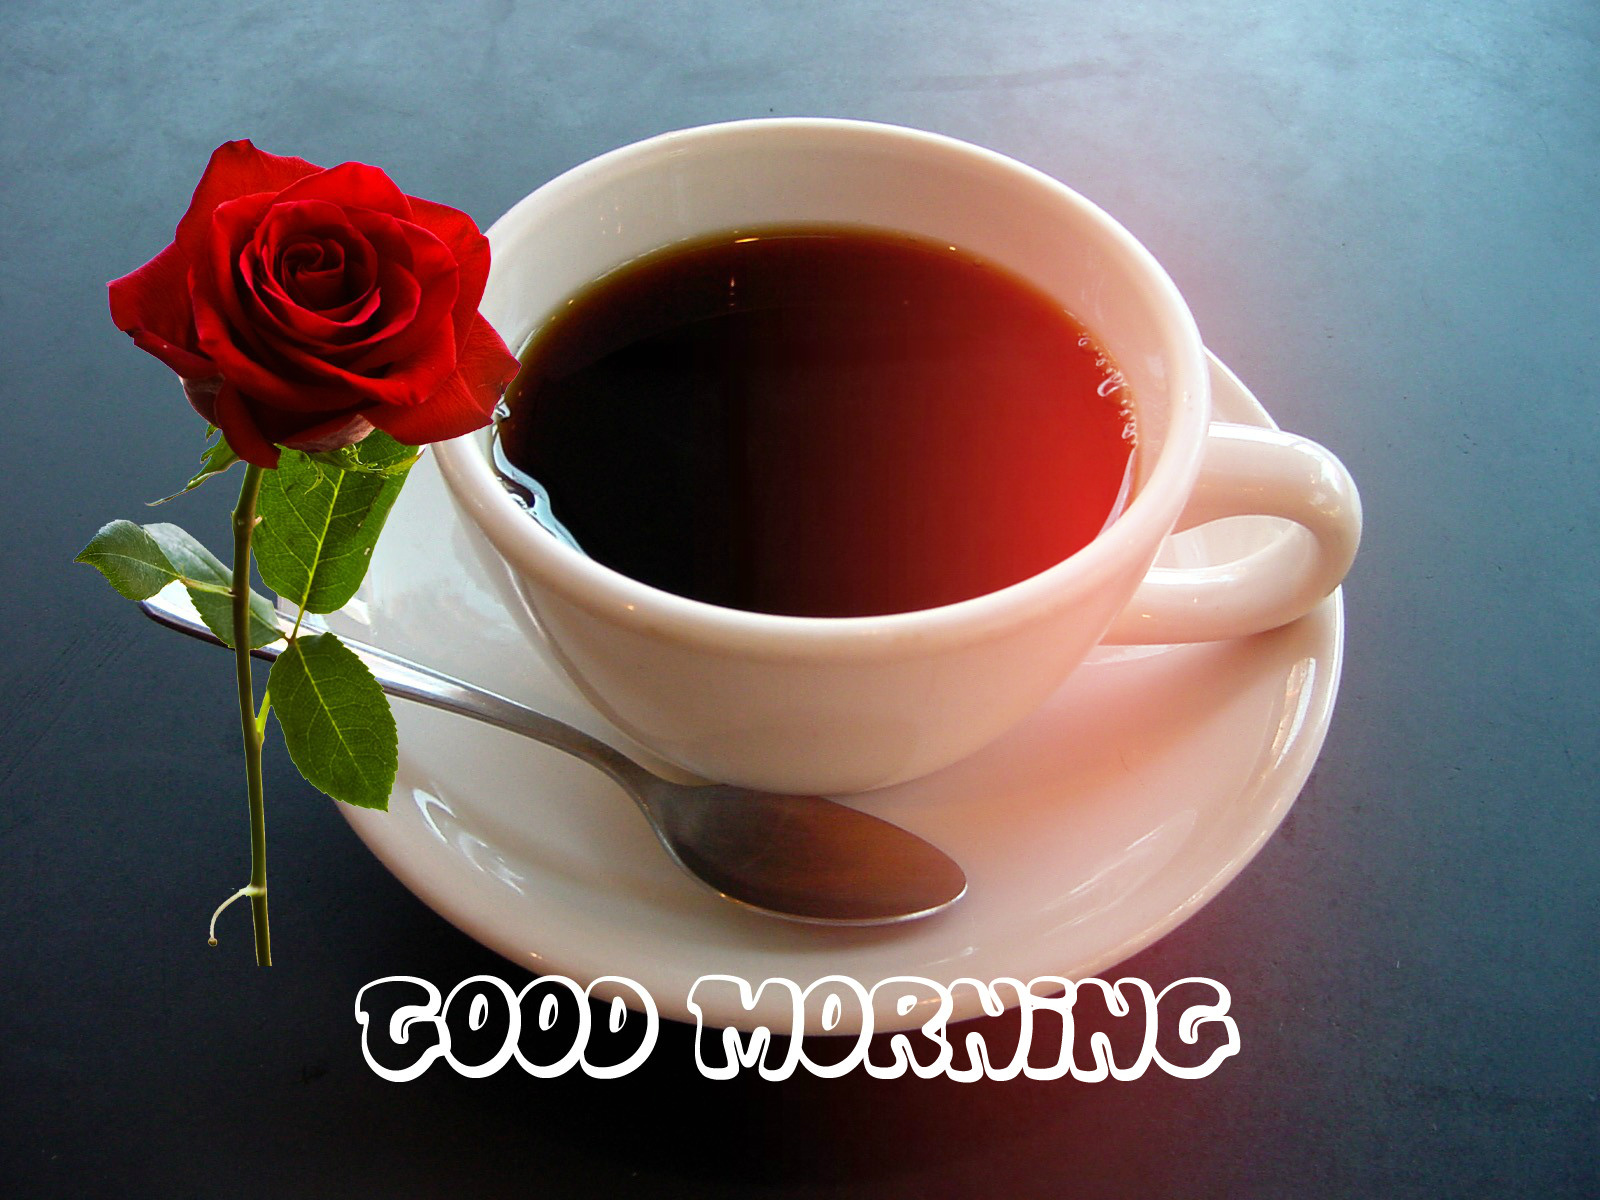 Sweet Girl And Boy Hd Wallpaper Lovely Red Roses Good Morning Wishes Images Festival Chaska